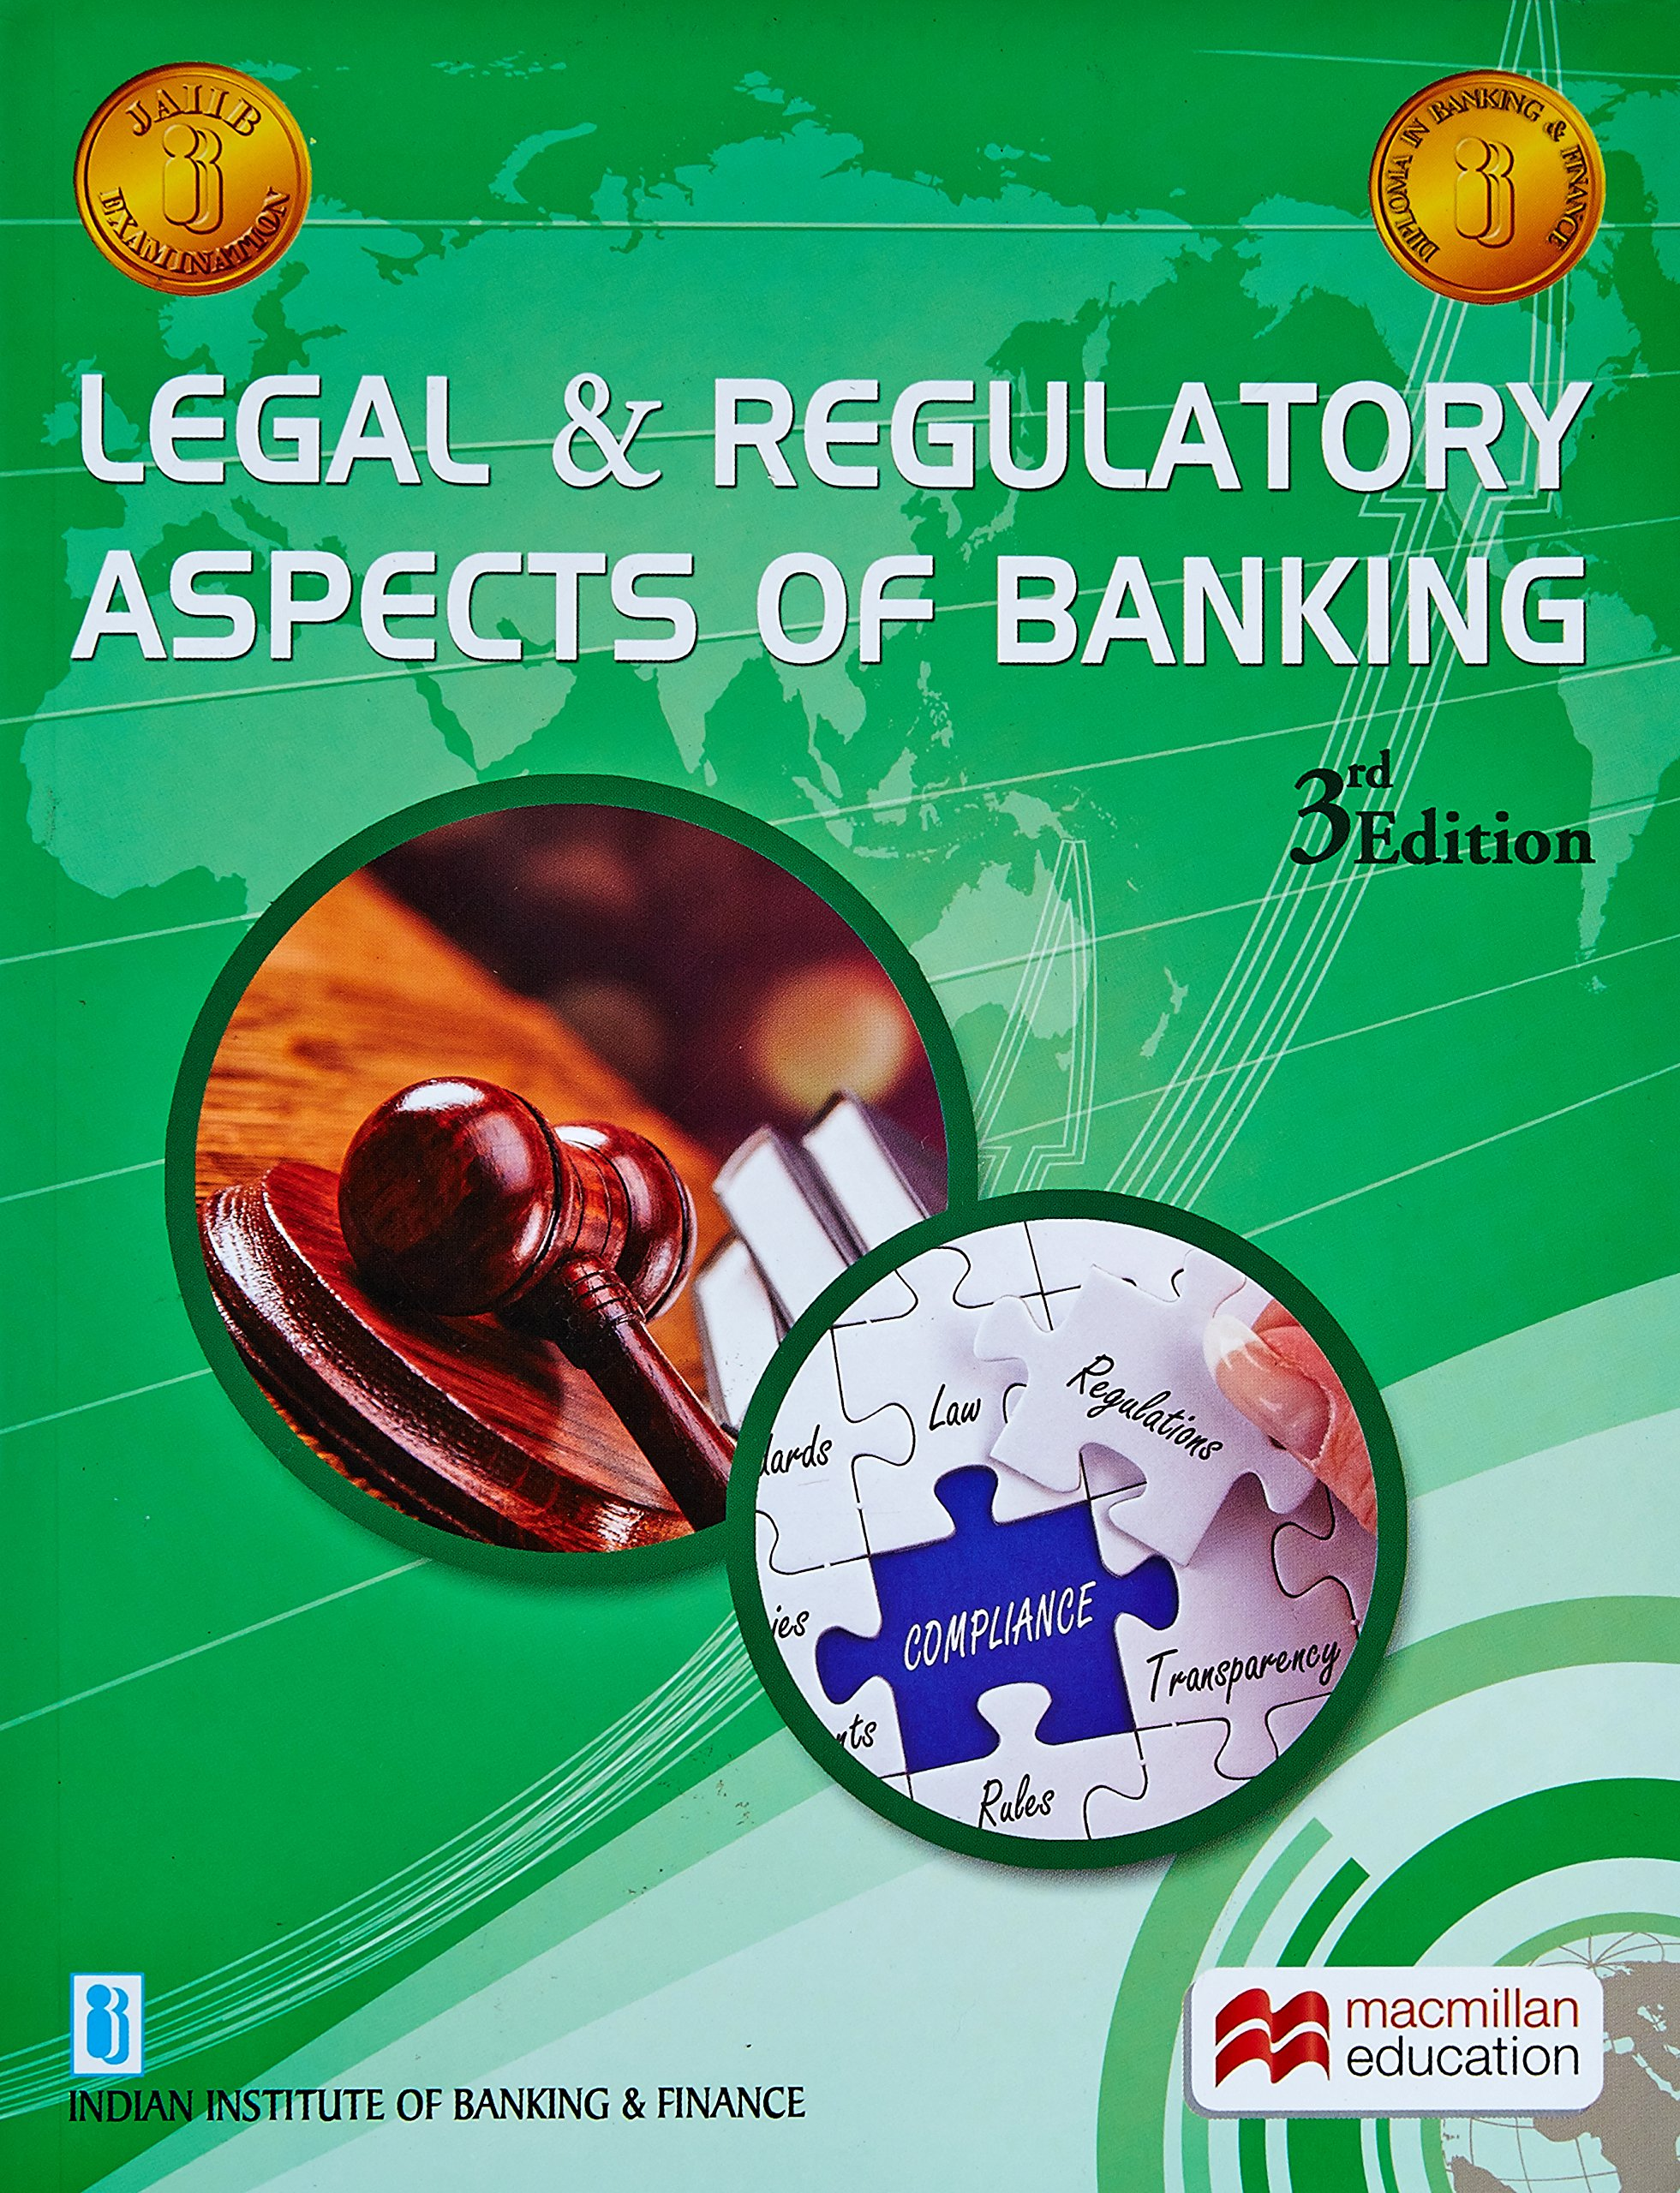 Legal and Regulatory Aspects of Banking - JAIIB Paperback